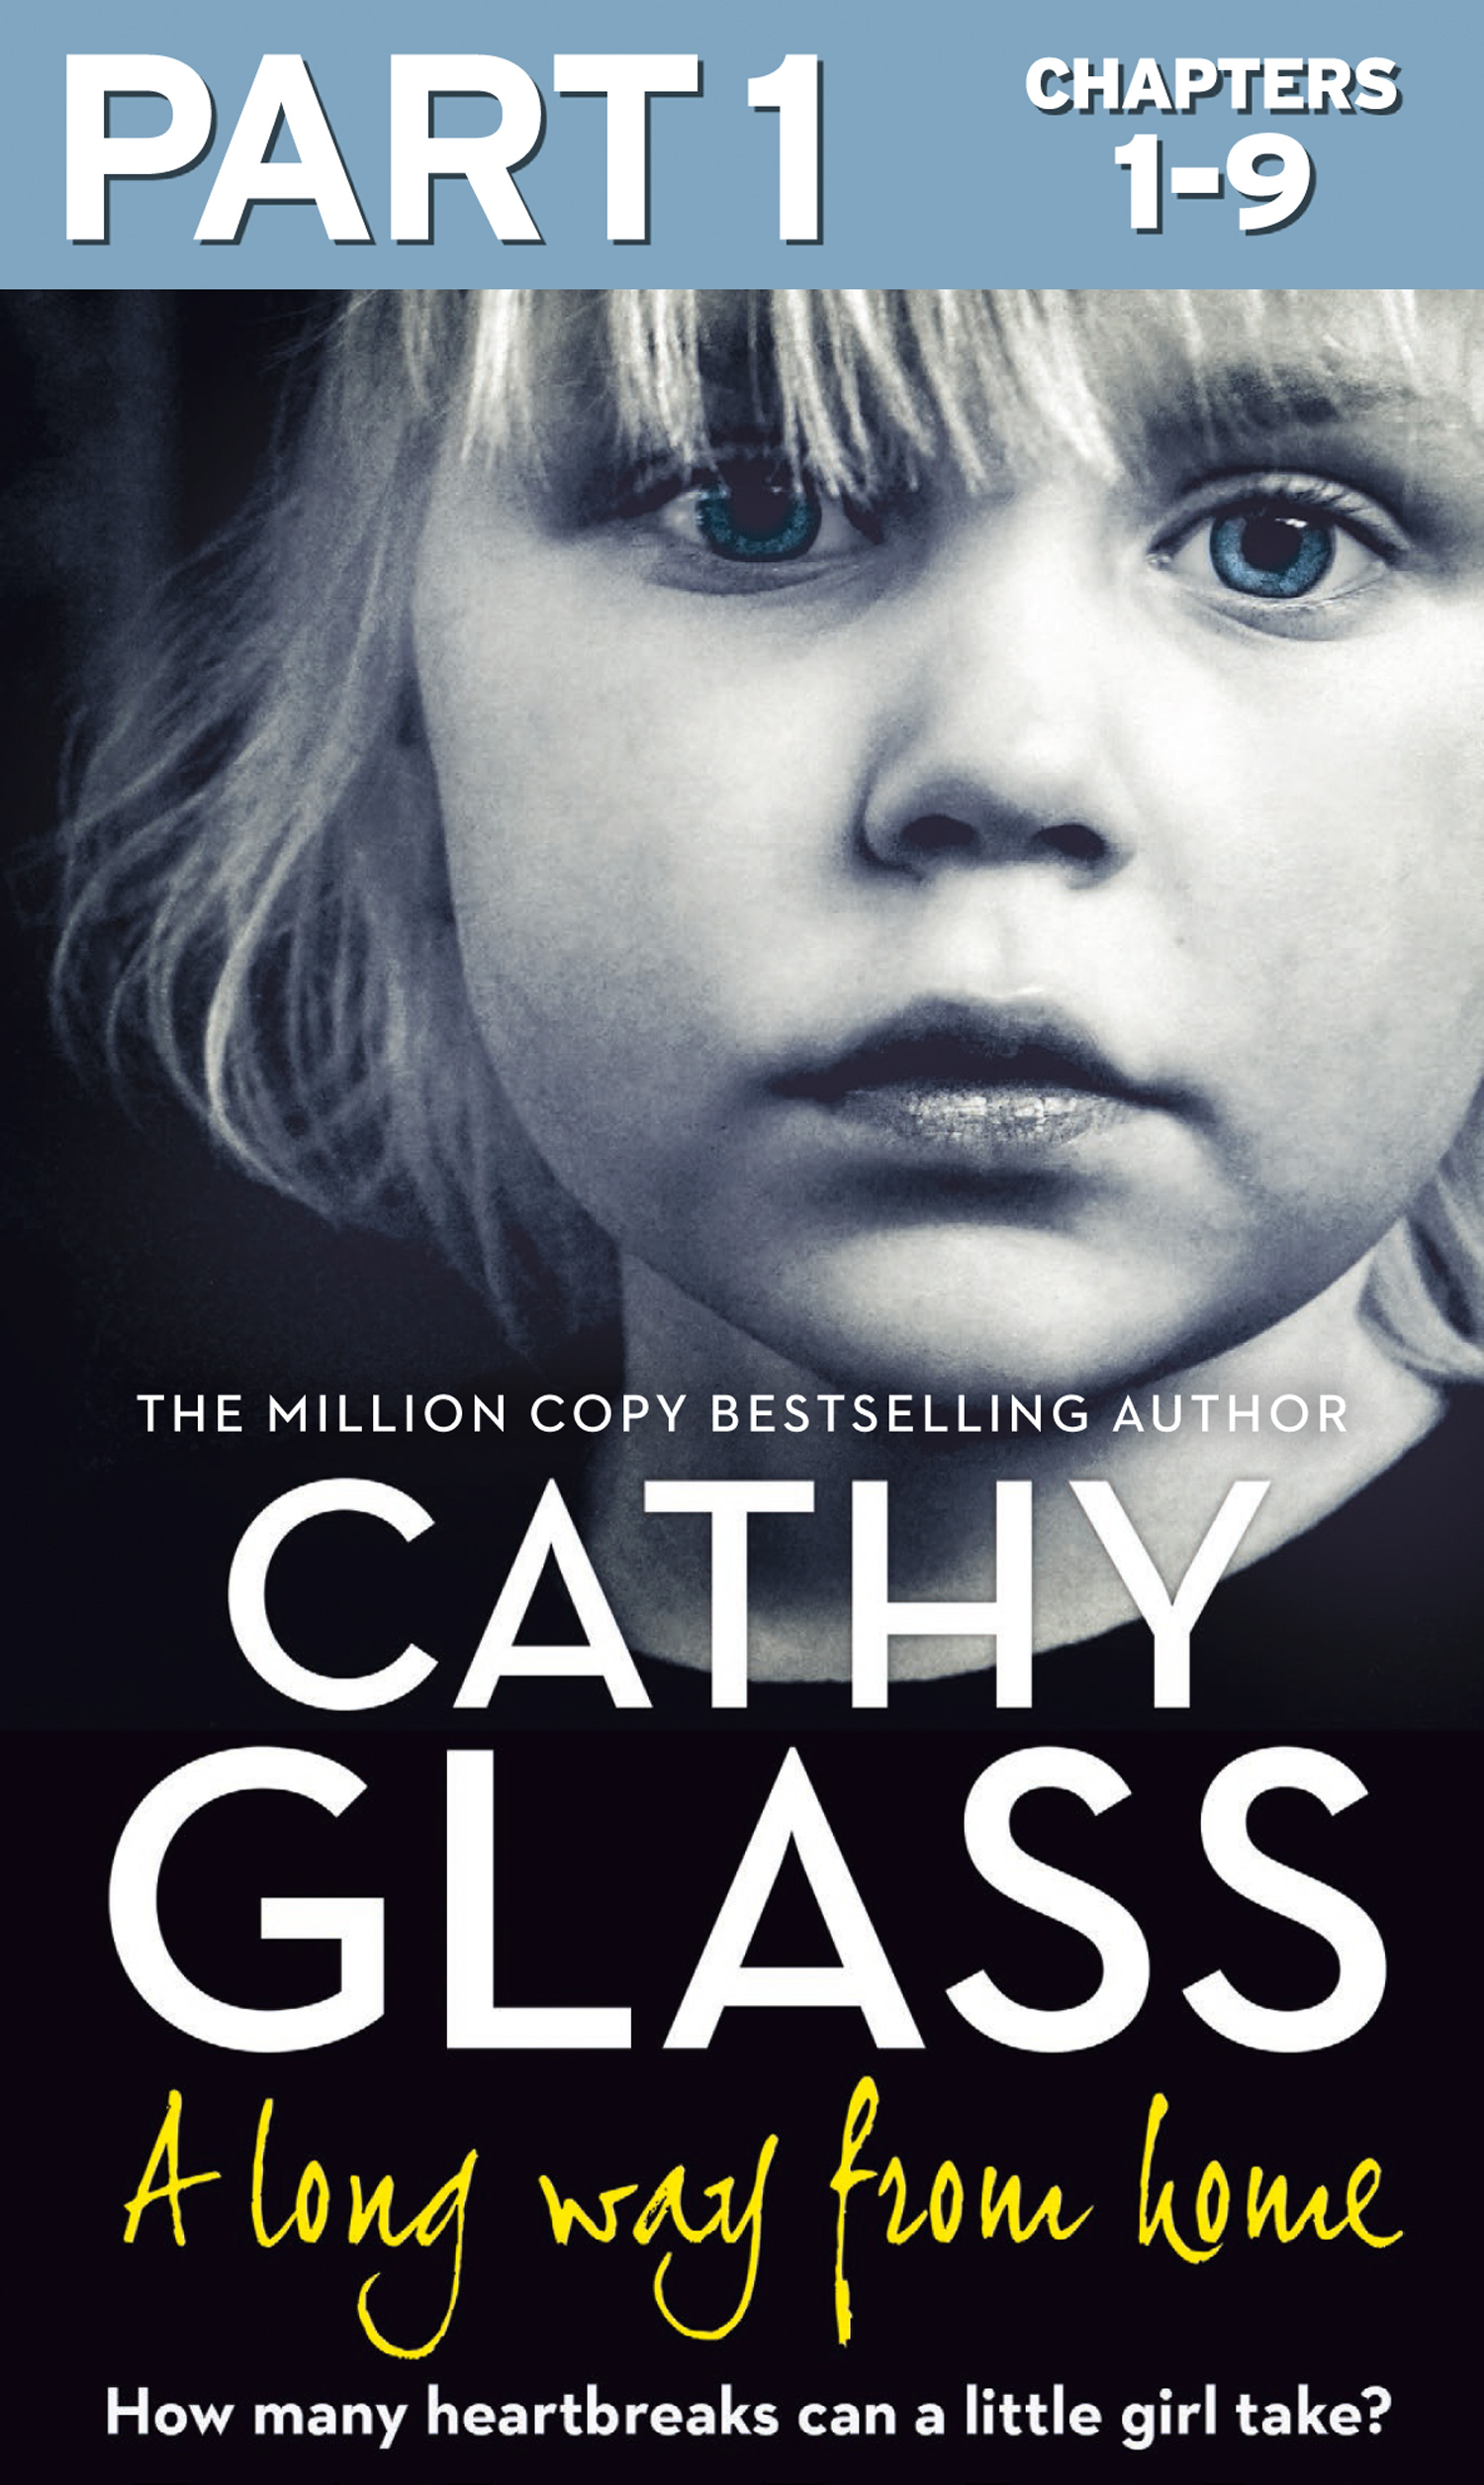 Cathy Glass A Long Way from Home: Part 1 of 3